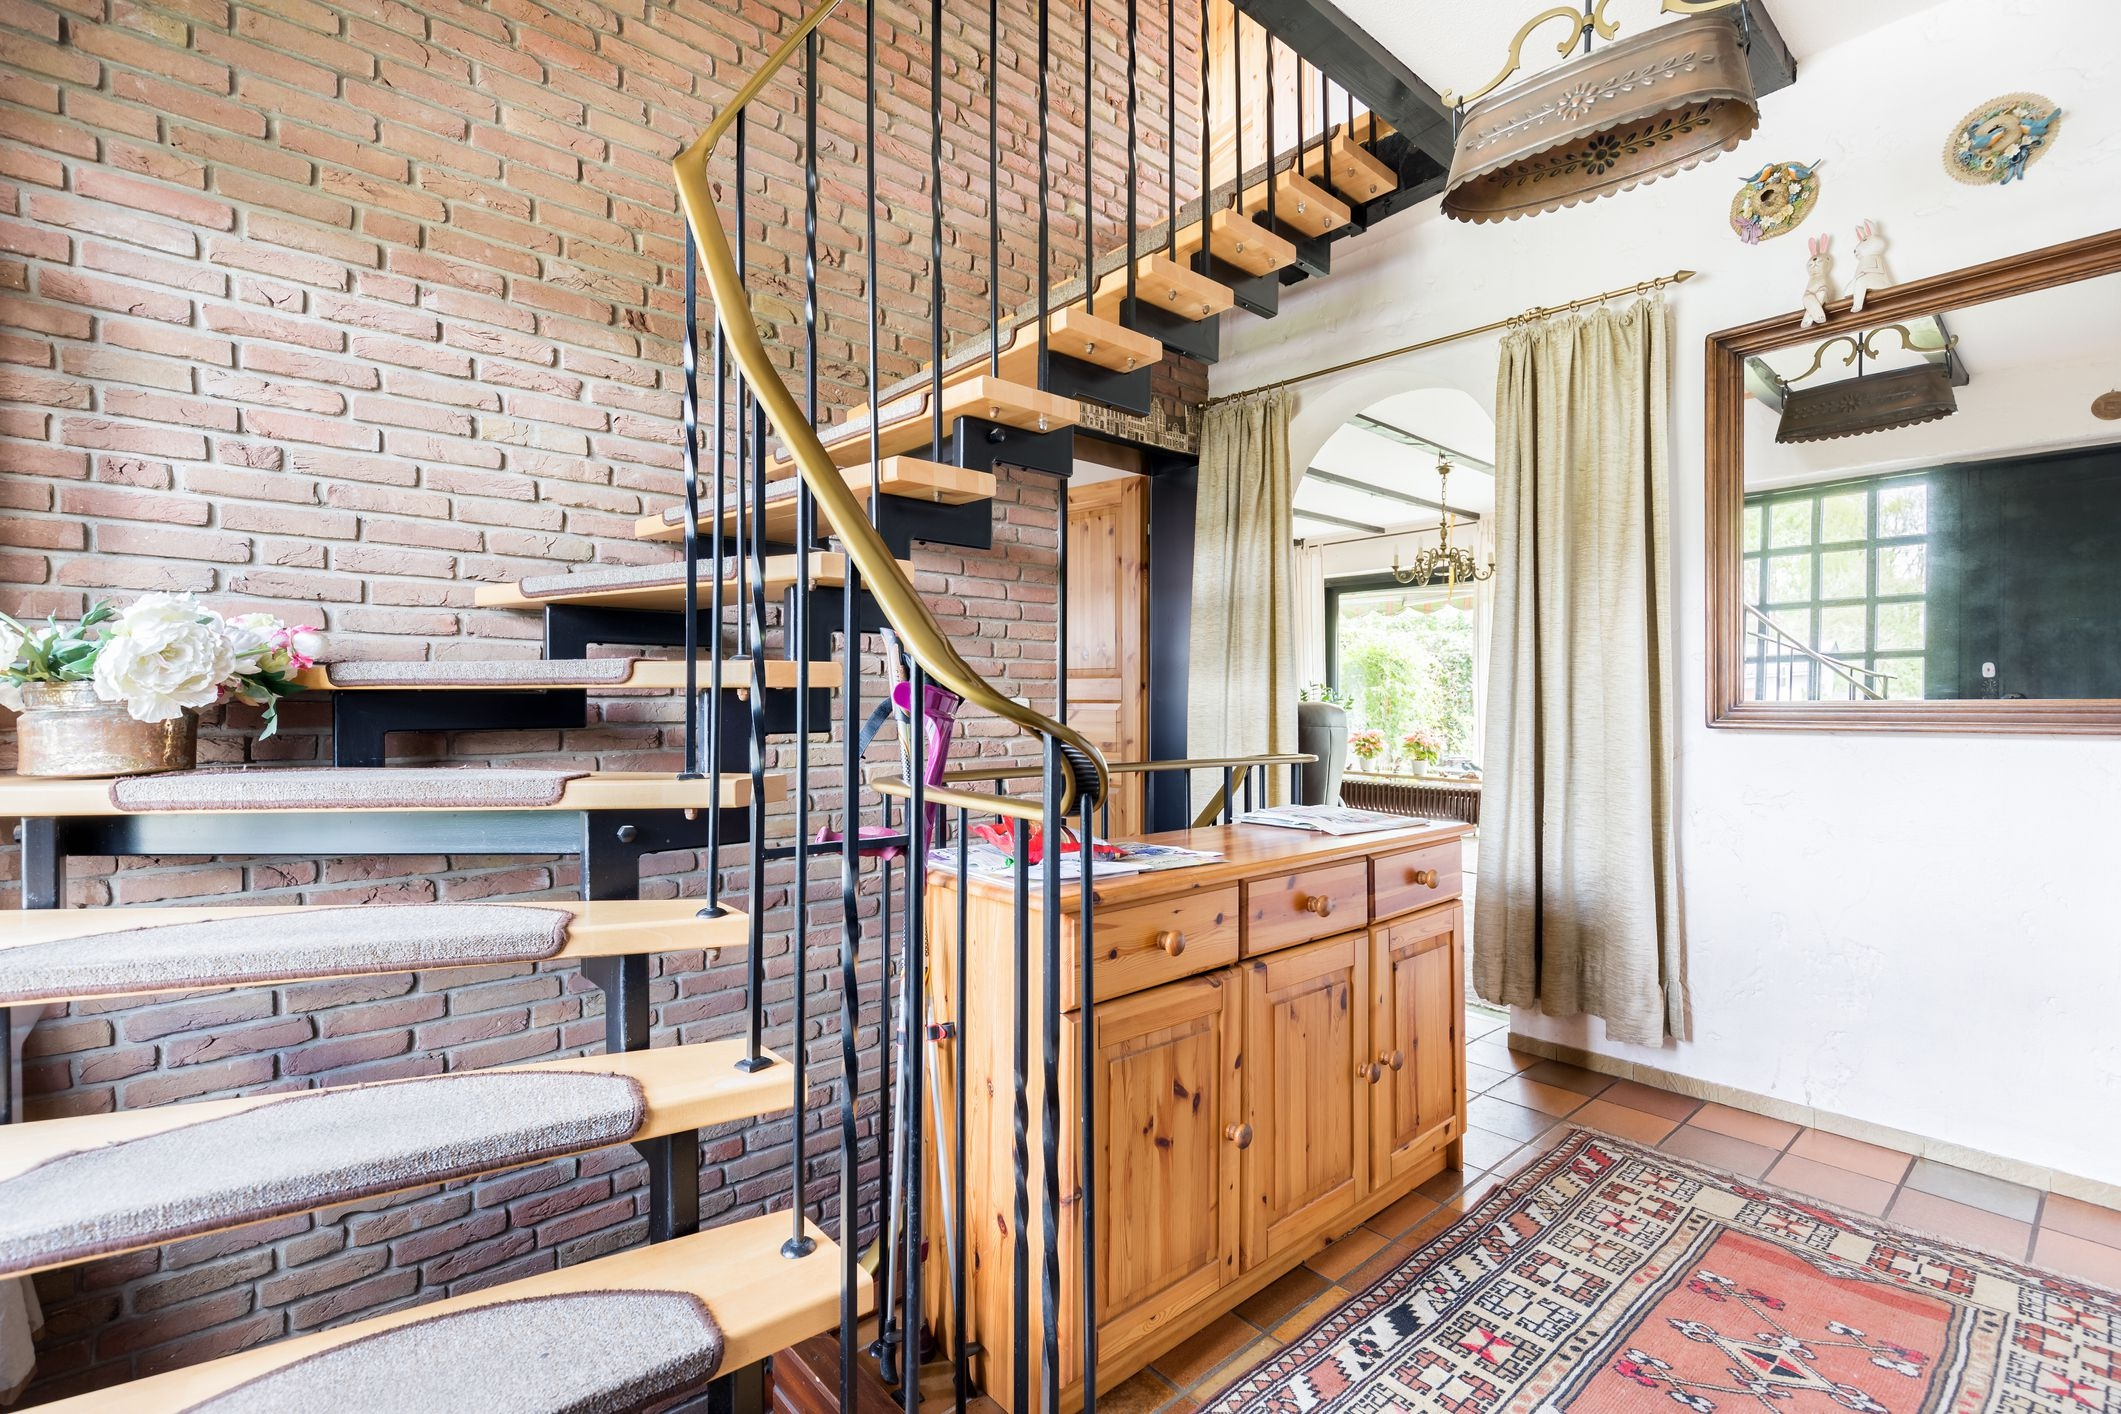 4 Decorative Ways To Dress Up A Stairway   Stairs Covered In Wood   Simple   Wood Paneling   Glass   Rustic   White